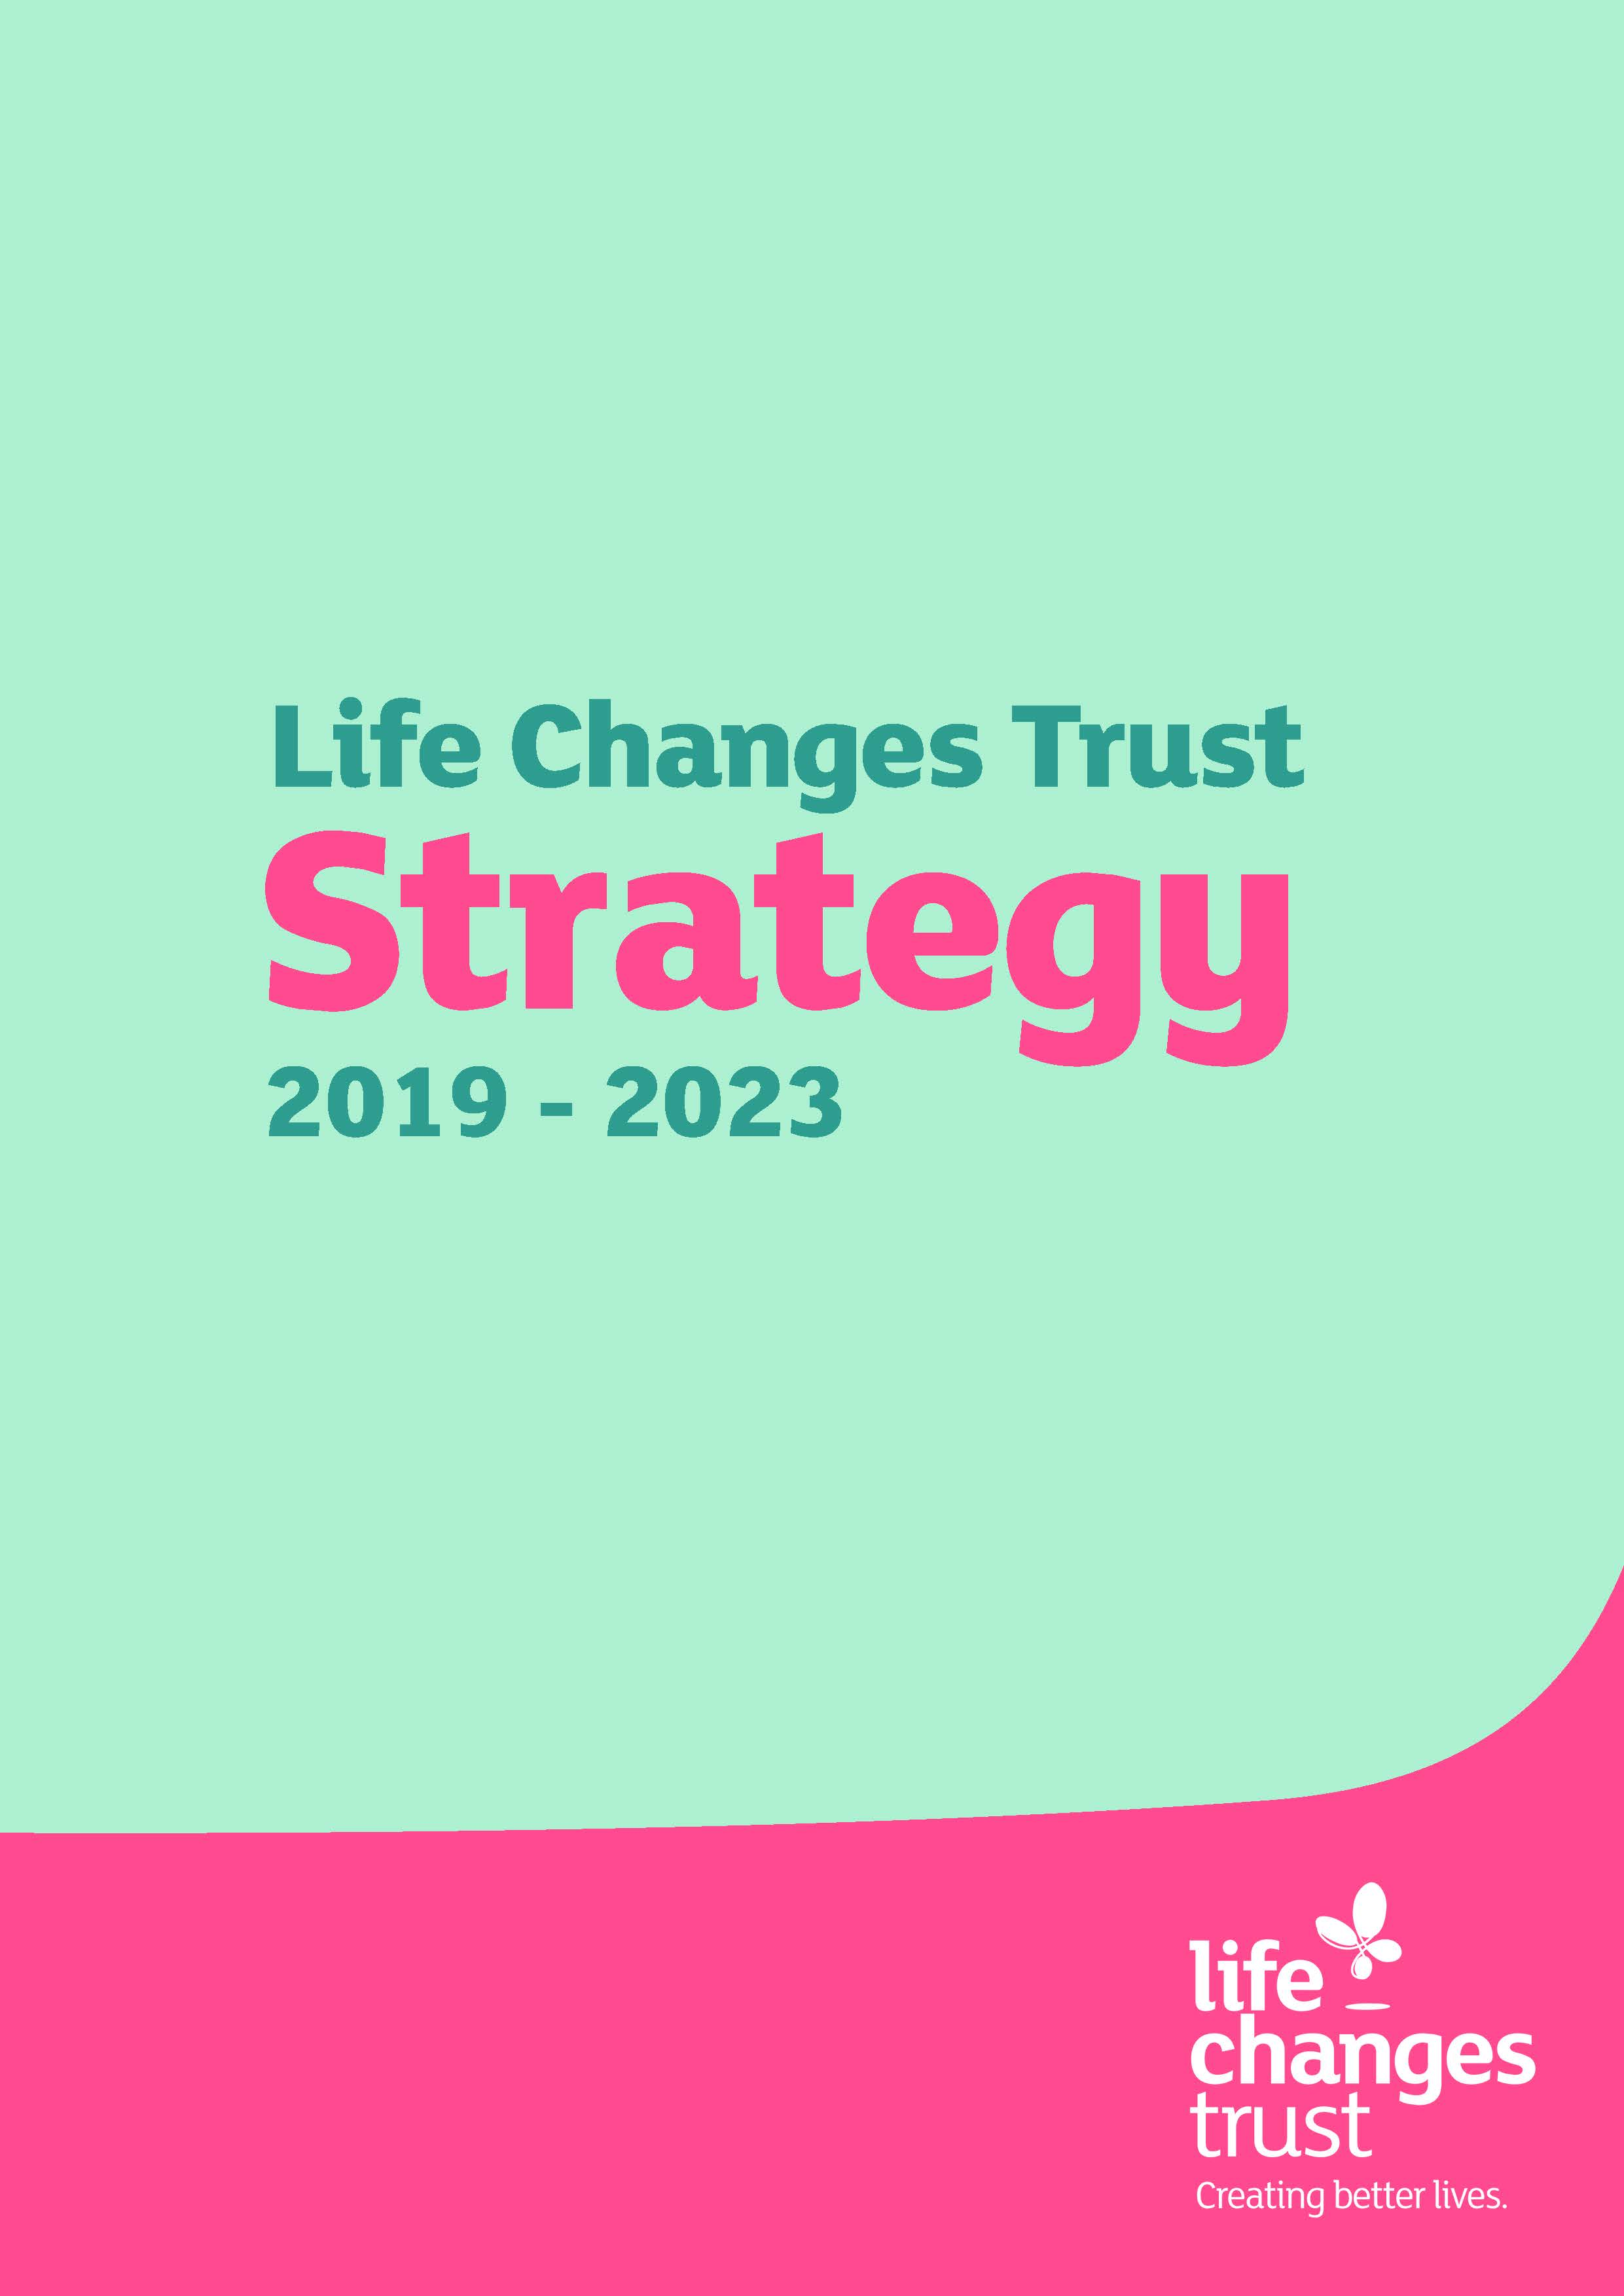 Life Changes Trust Strategy 2019 - 2023